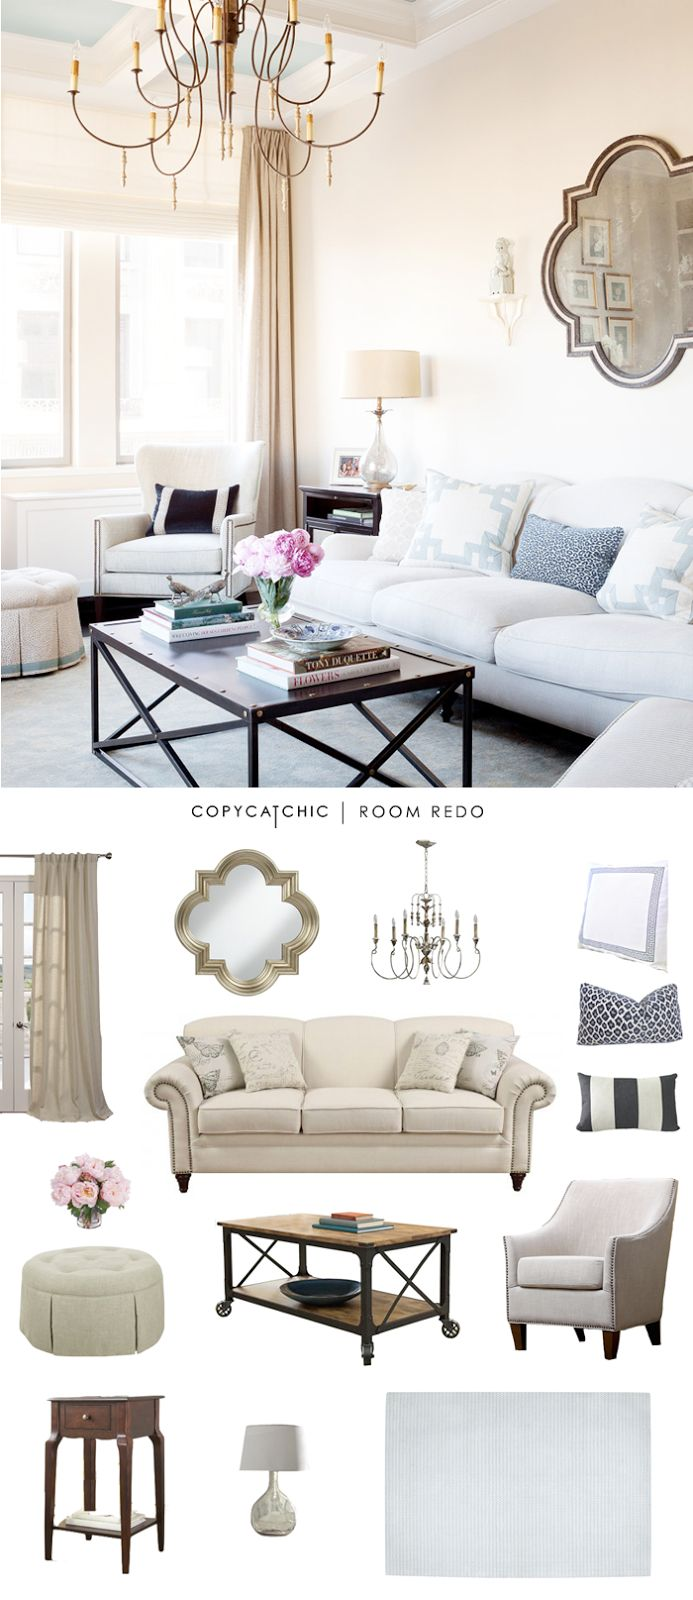 TOTAL | $2,483 sofa $493 | chandelier $326 | lamp $99chair $326 | coffee table $255 | mirror $150side table $68 | ottoman $430 | striped pillow $25leopard pillow $32 | white and blue pillow (ea) $50ru